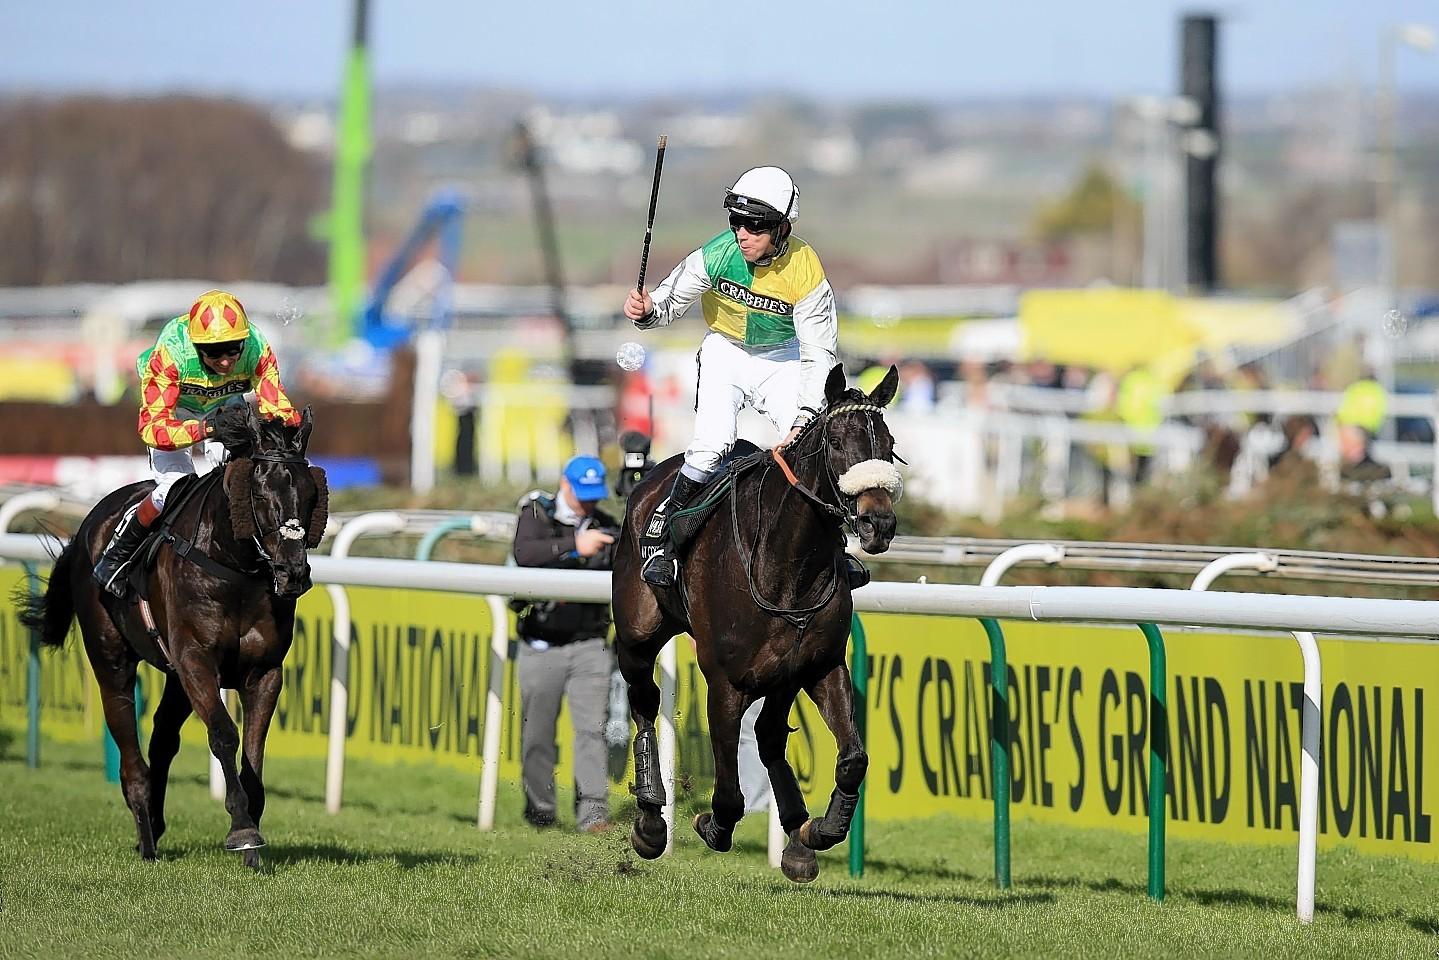 Jockey Leighton Aspell celebrates on board Many Clouds after victory in last year's Grand National